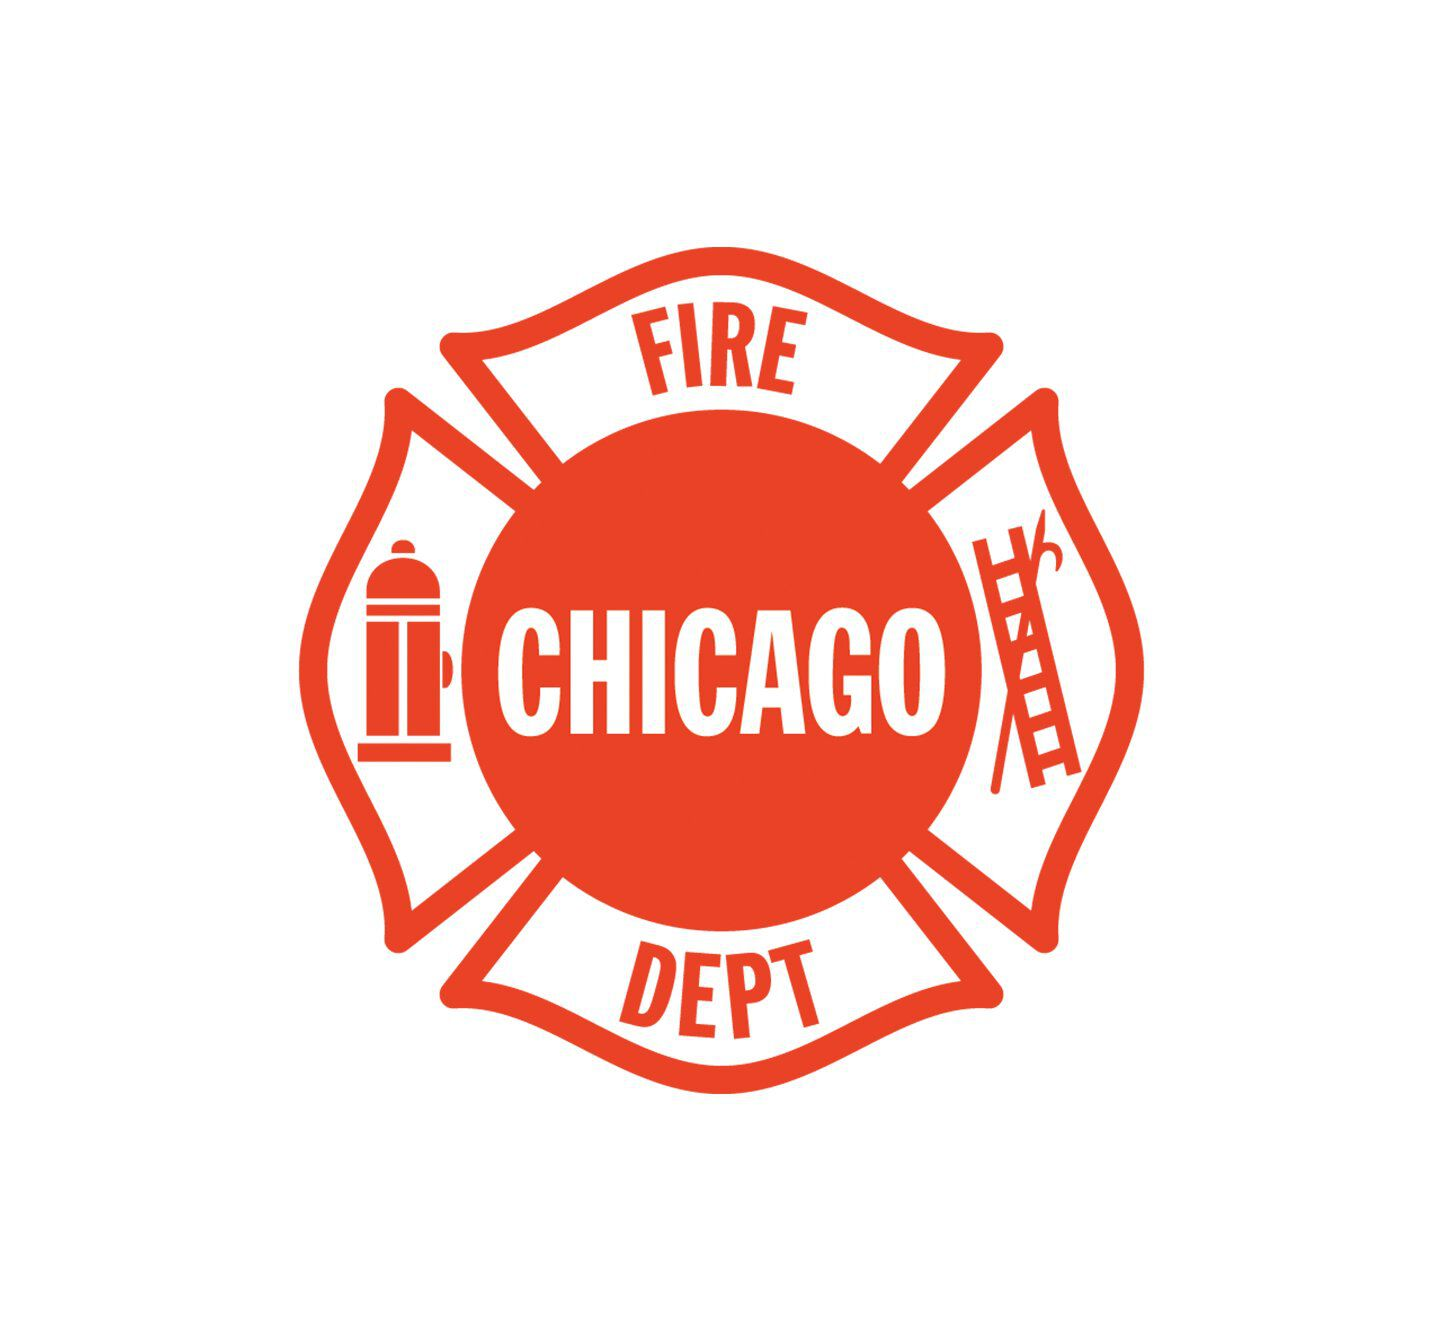 Chicago Fire Department Partnership